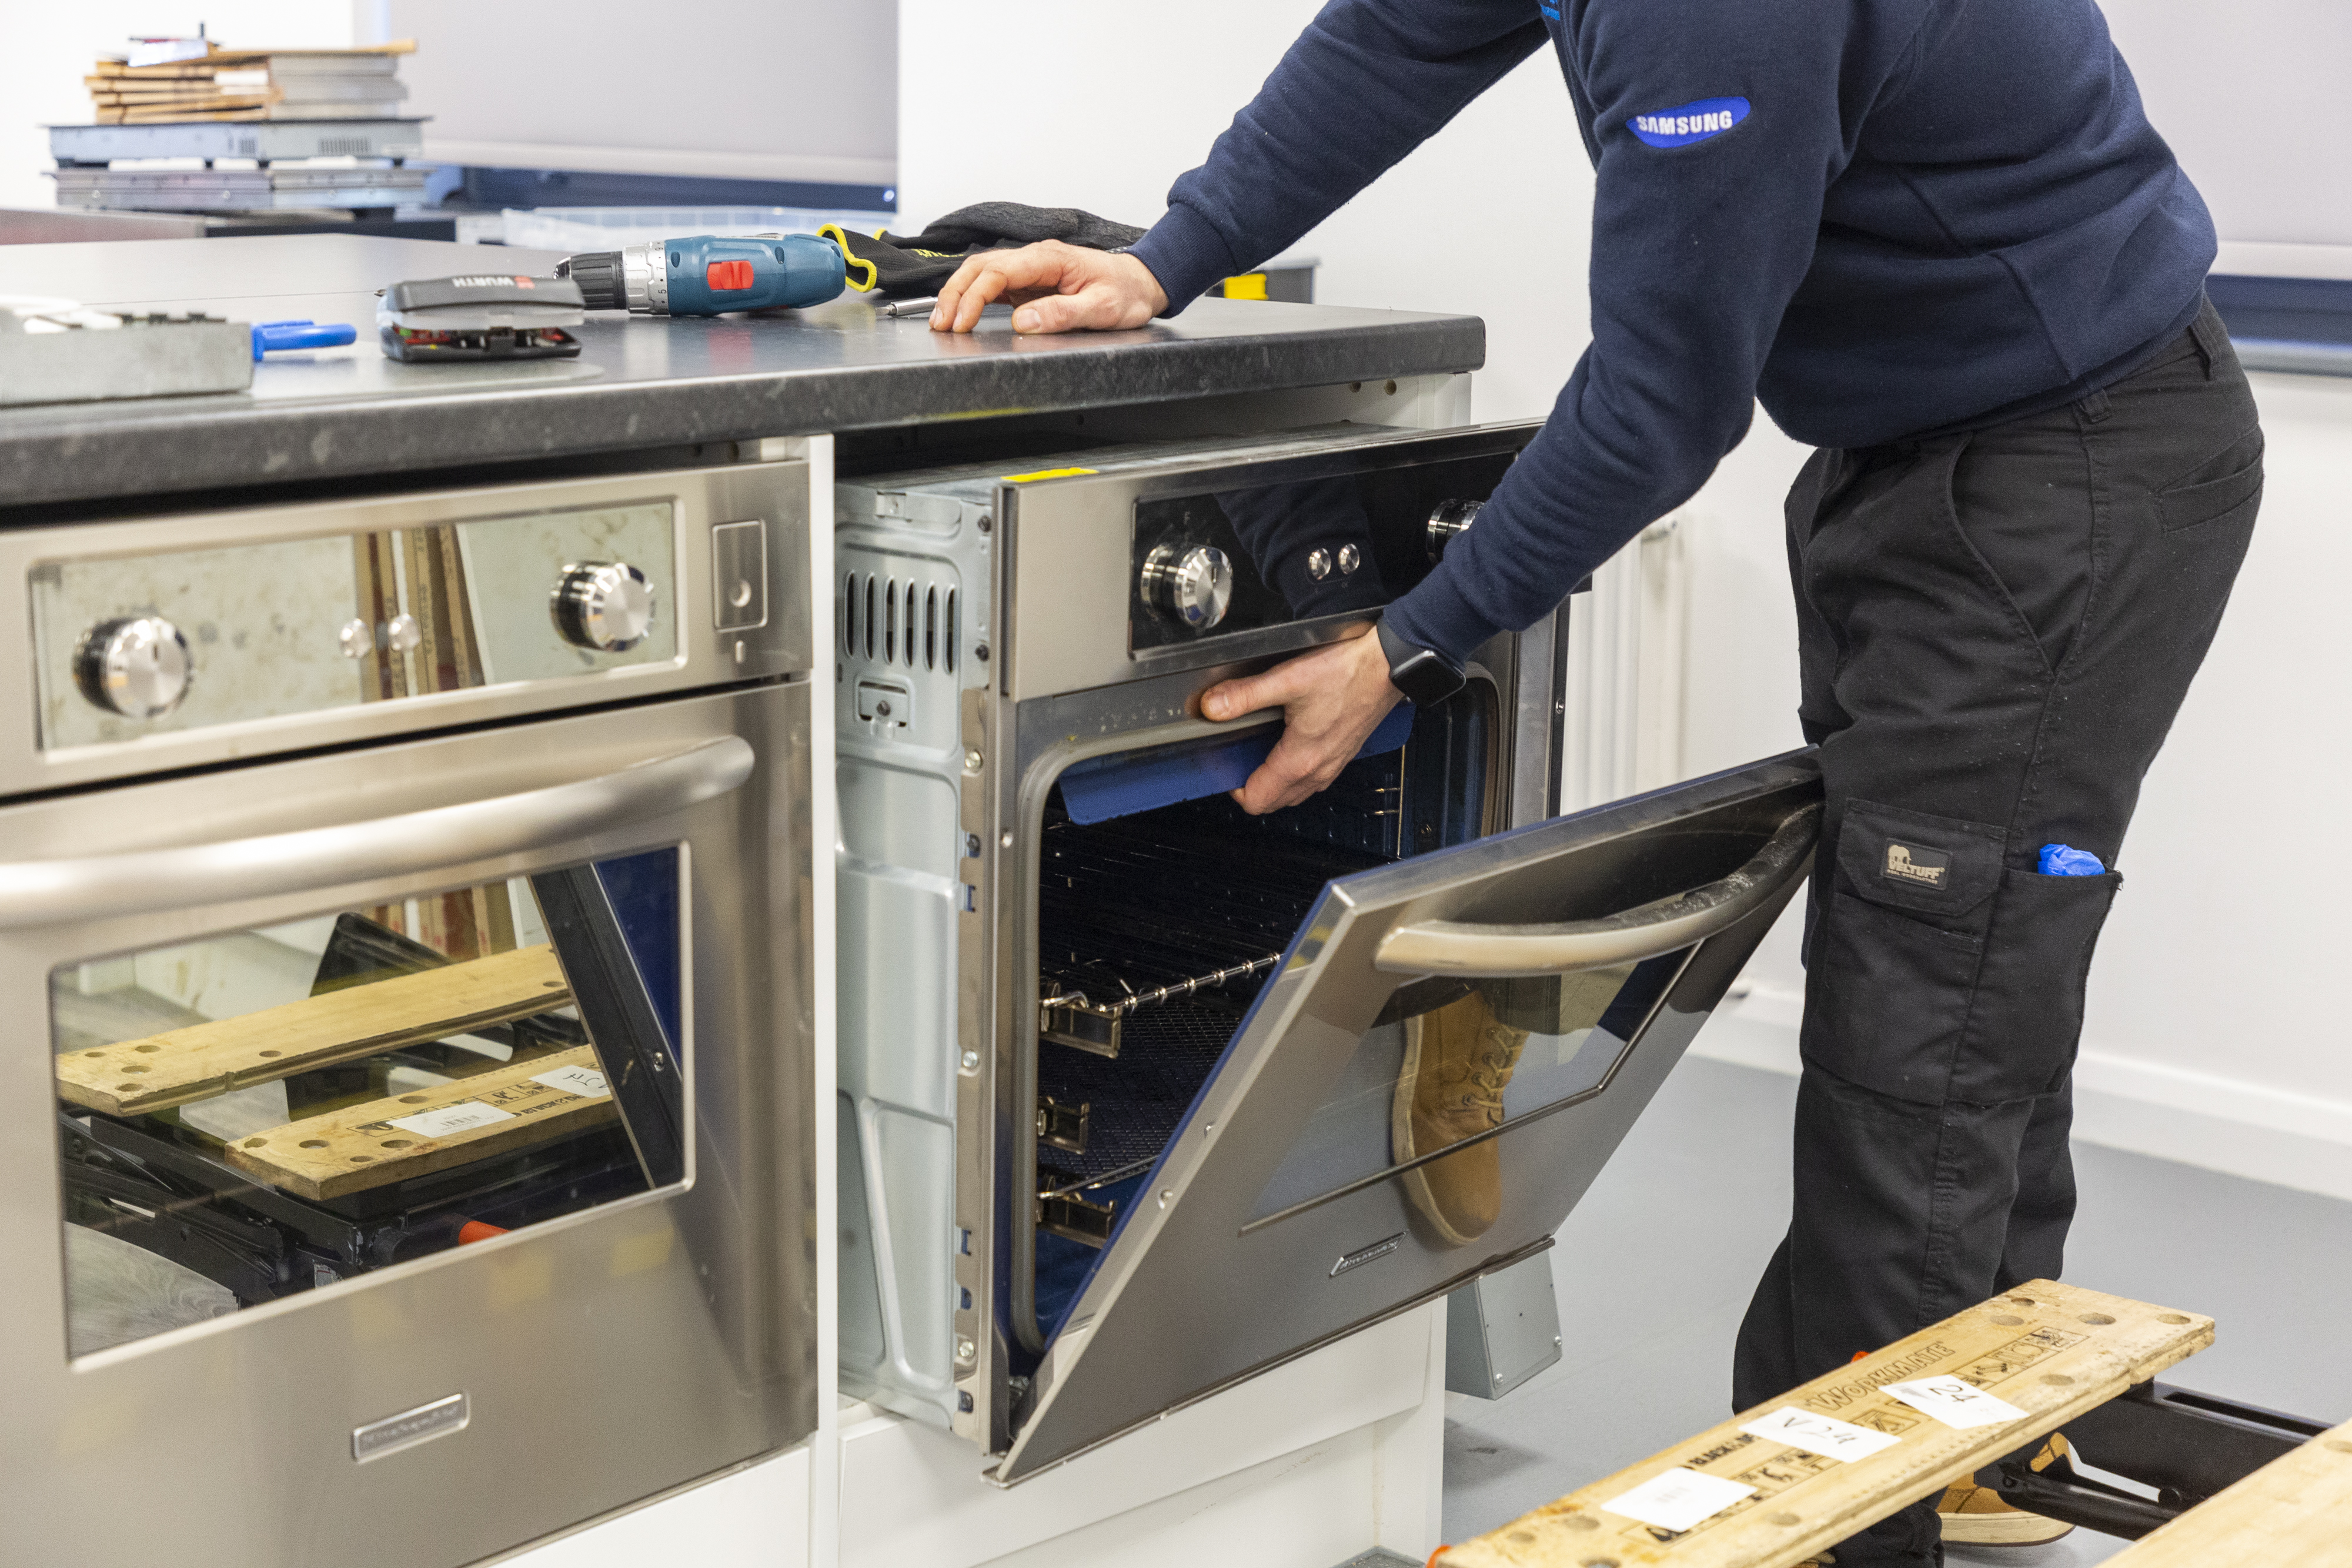 Keeping Appliances Safe When Moving Home